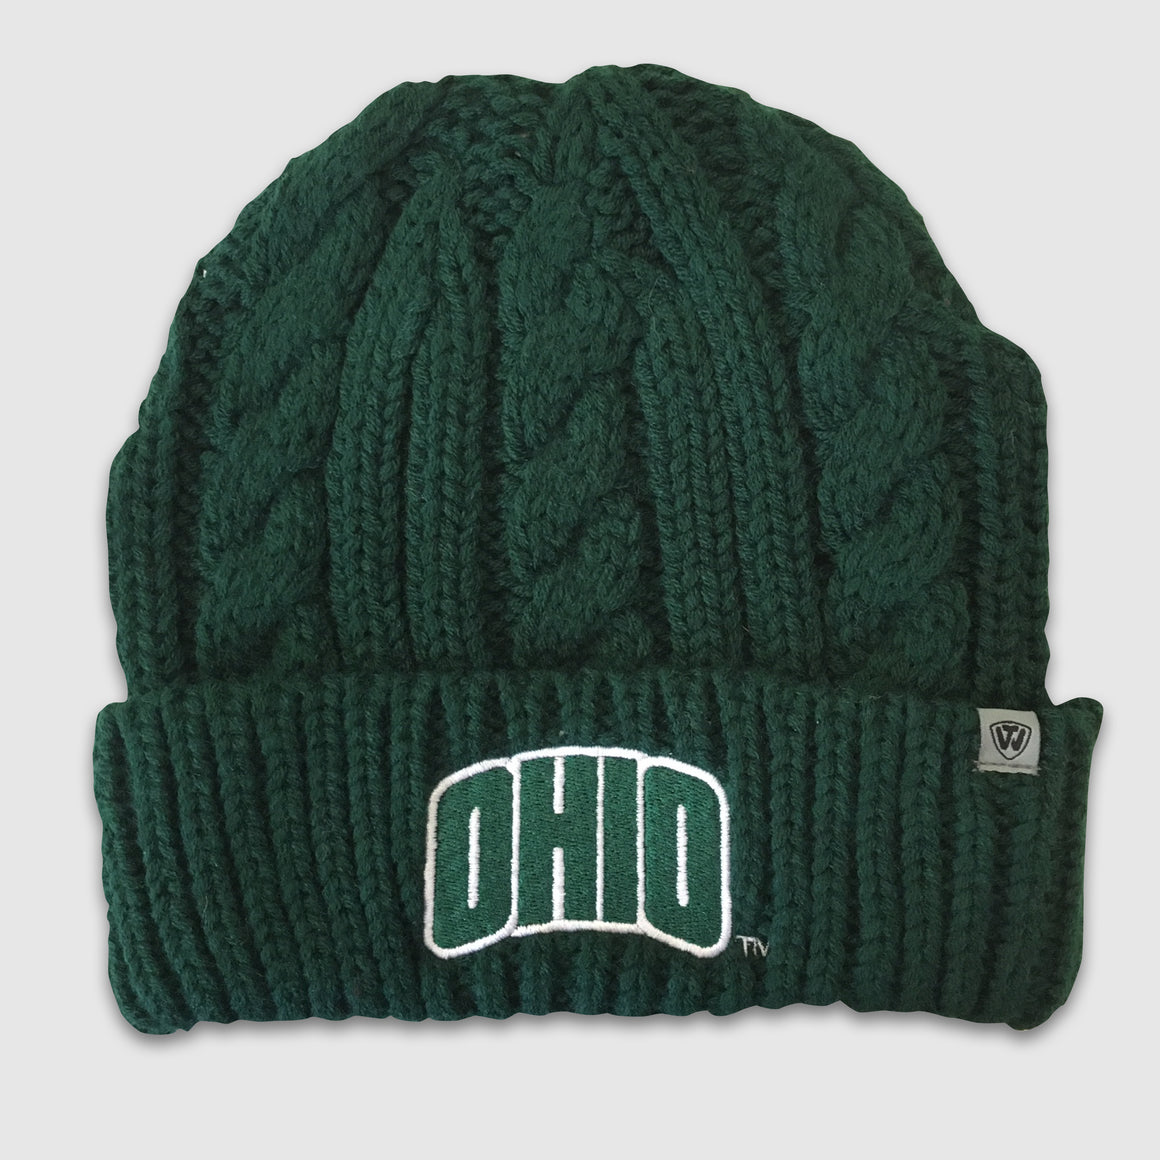 Ohio Bobcat Knit Beanie - Cincy Shirts